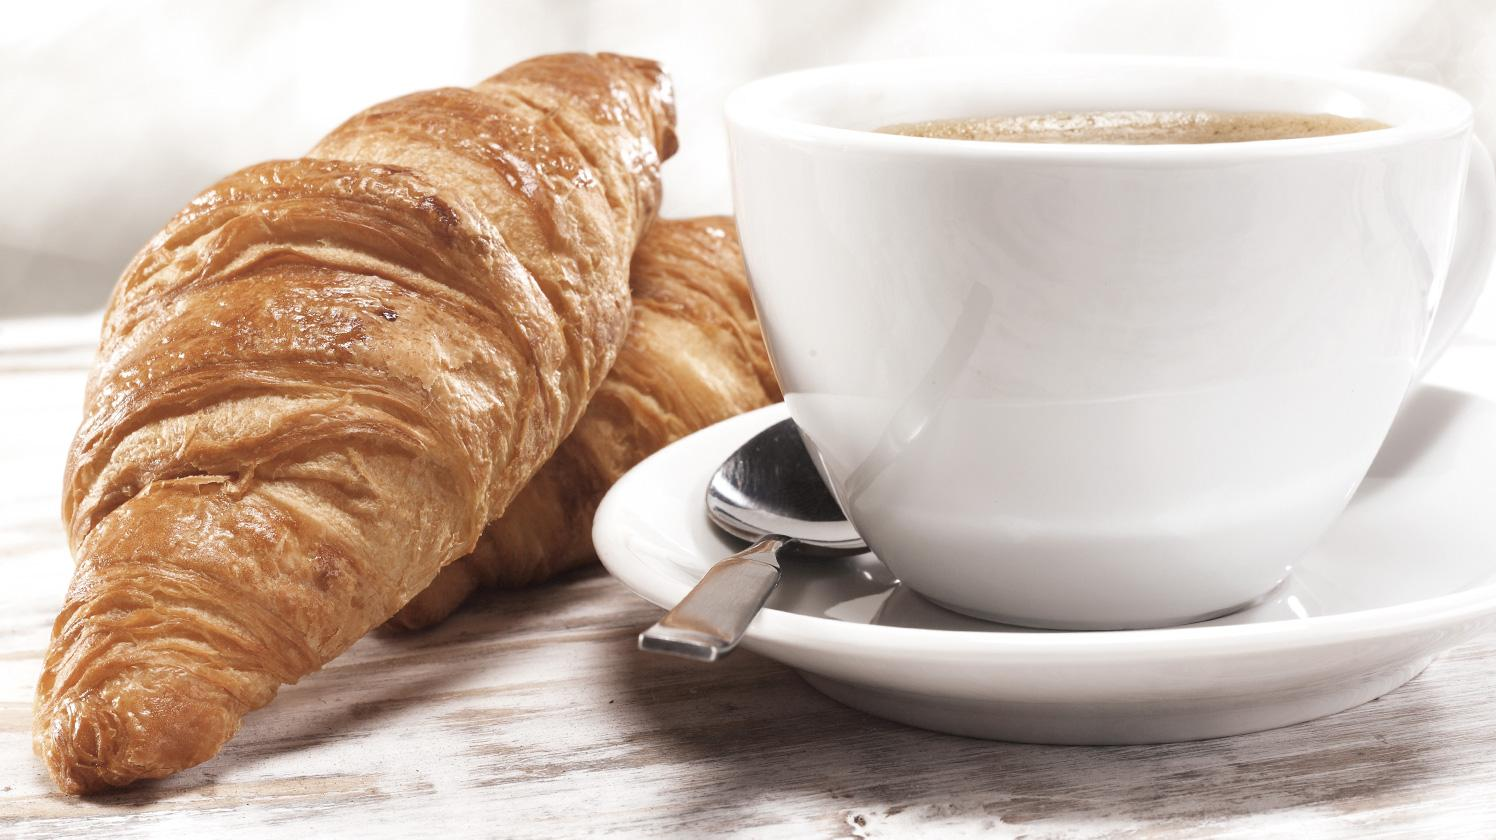 BRITA water coffee shop bakery croissants coffee